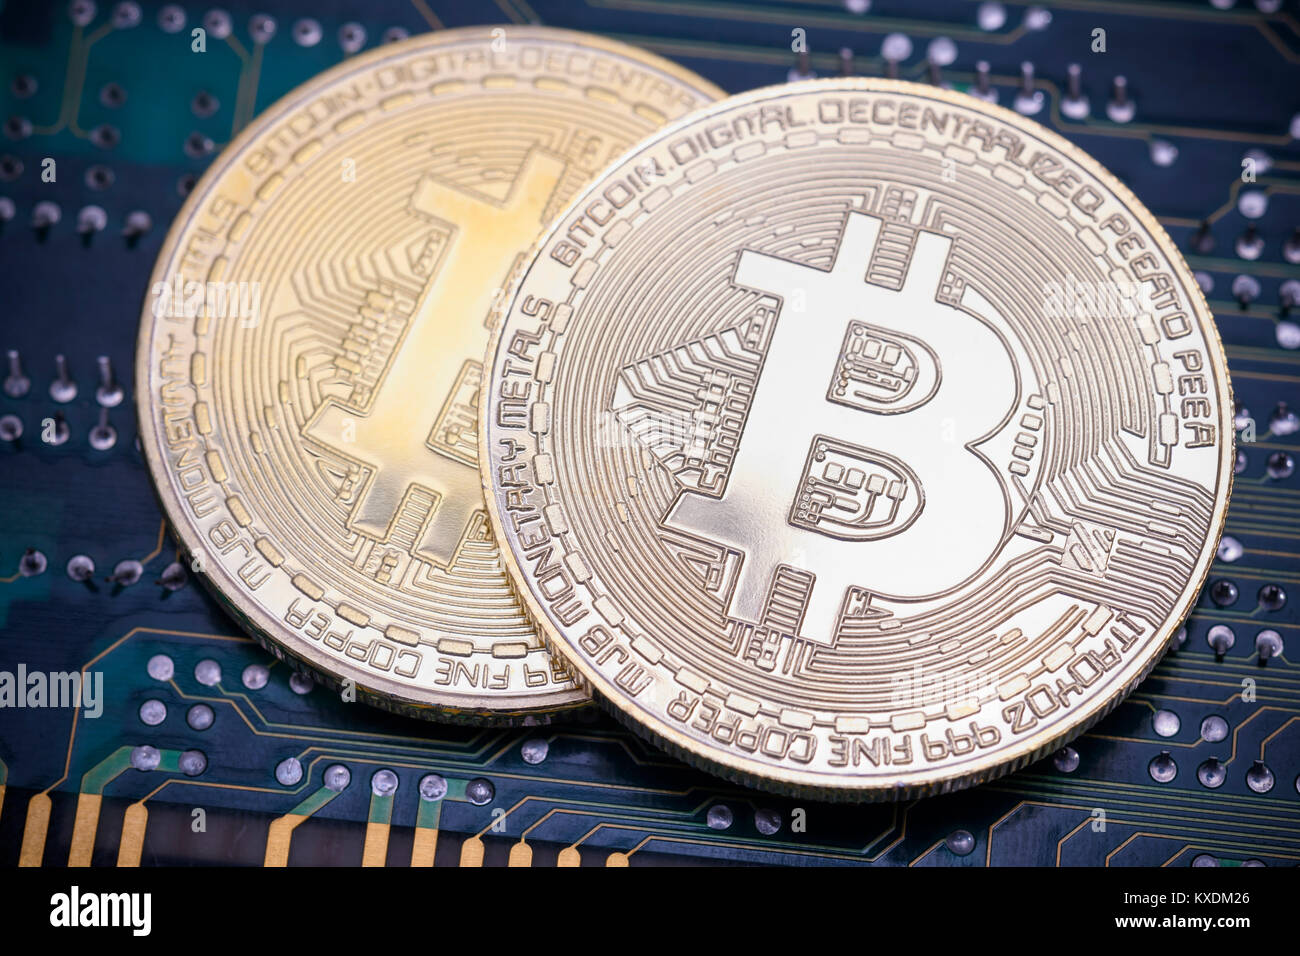 Symbol image digital currency, silver physical coins Bitcoin on printed circuit board Stock Photo